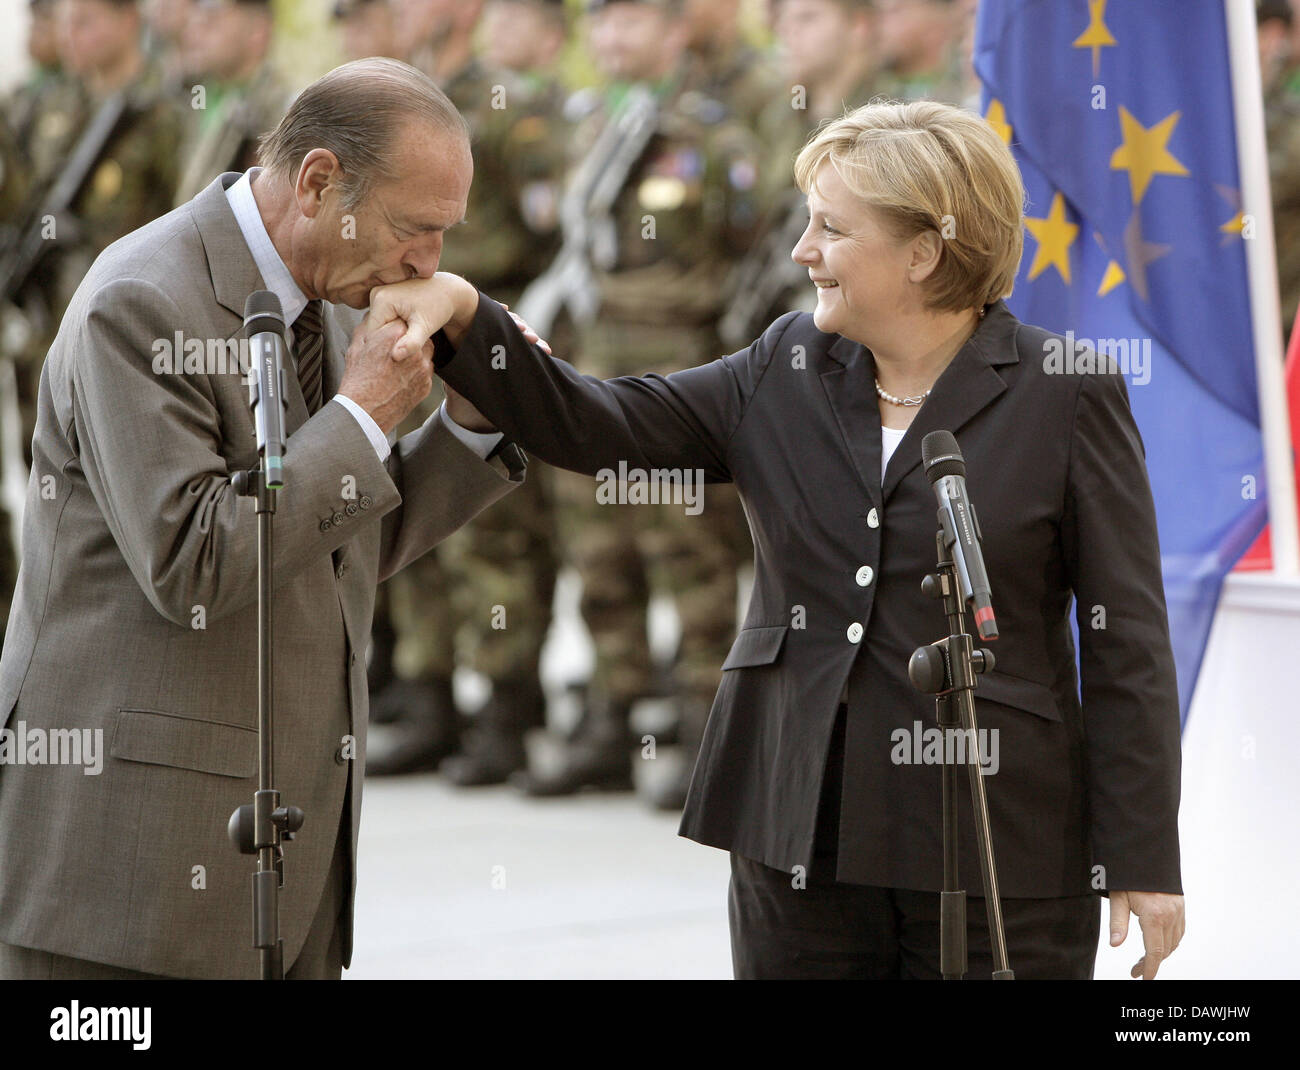 German Chancellor Angela Merkel Has Her Right Hand Kissed By Parting Stock Photo Alamy